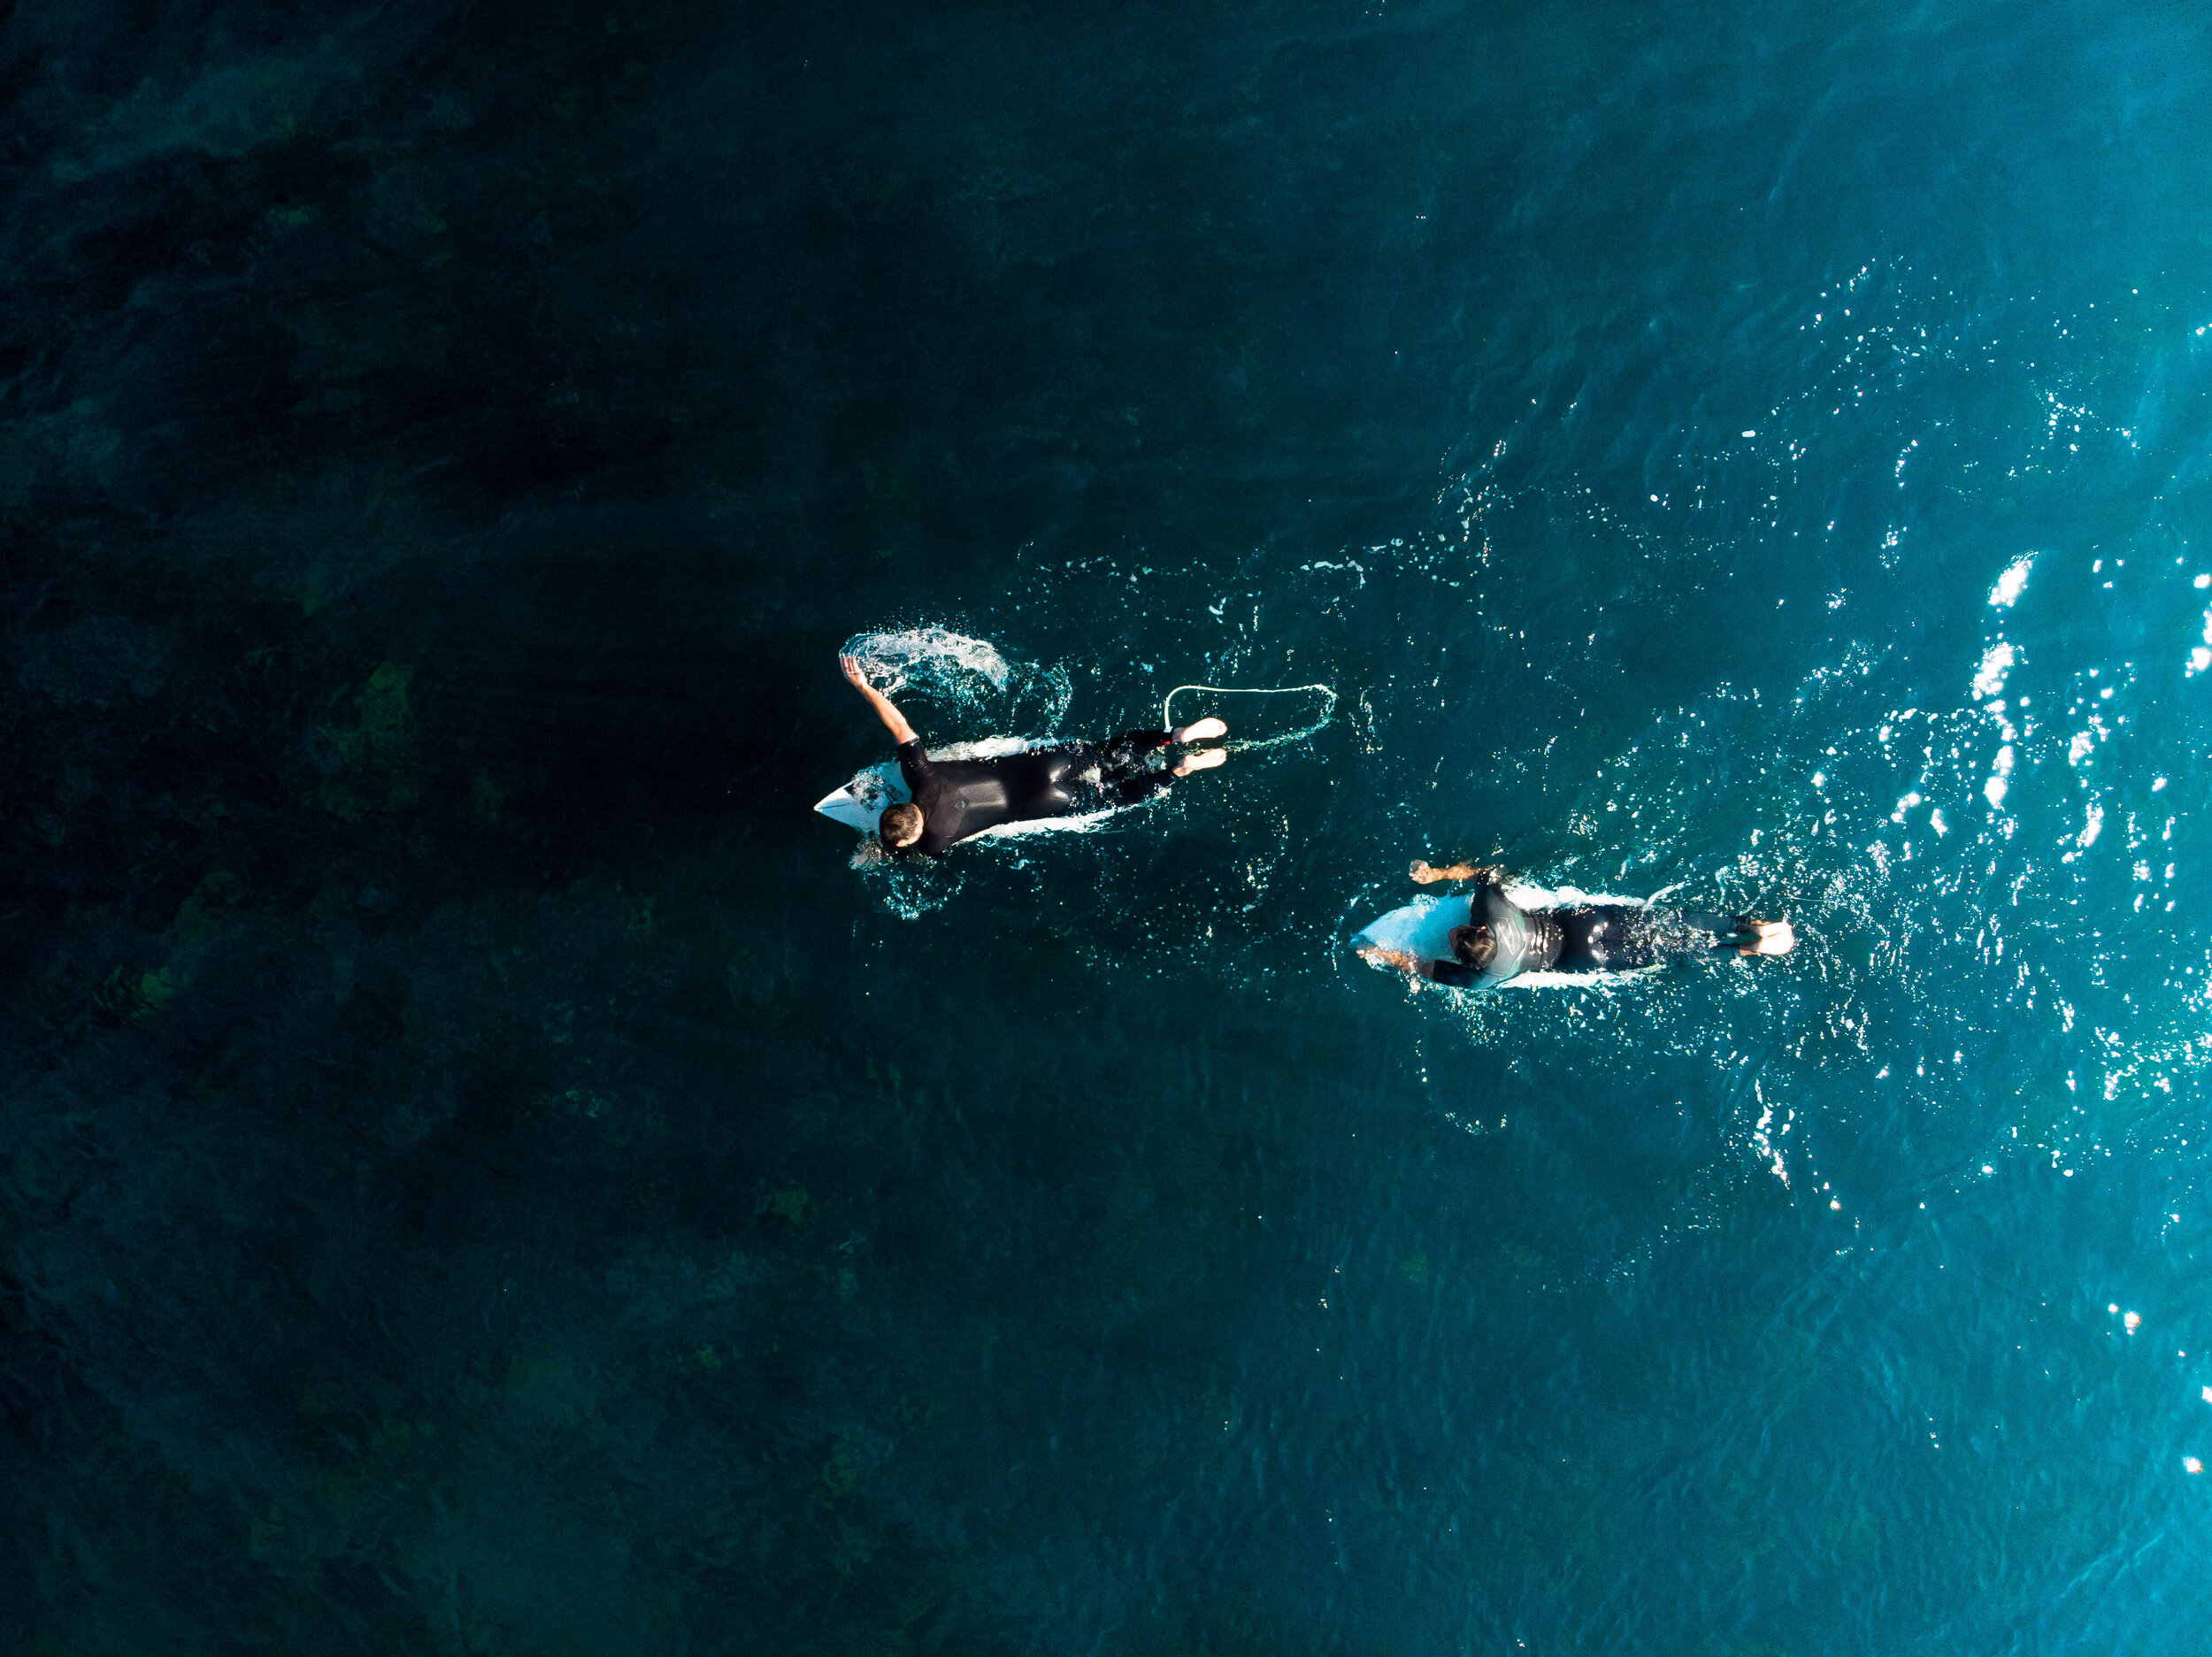 Aerial Australia - Aerial Photography | Brand Collaboration | Instagram Content